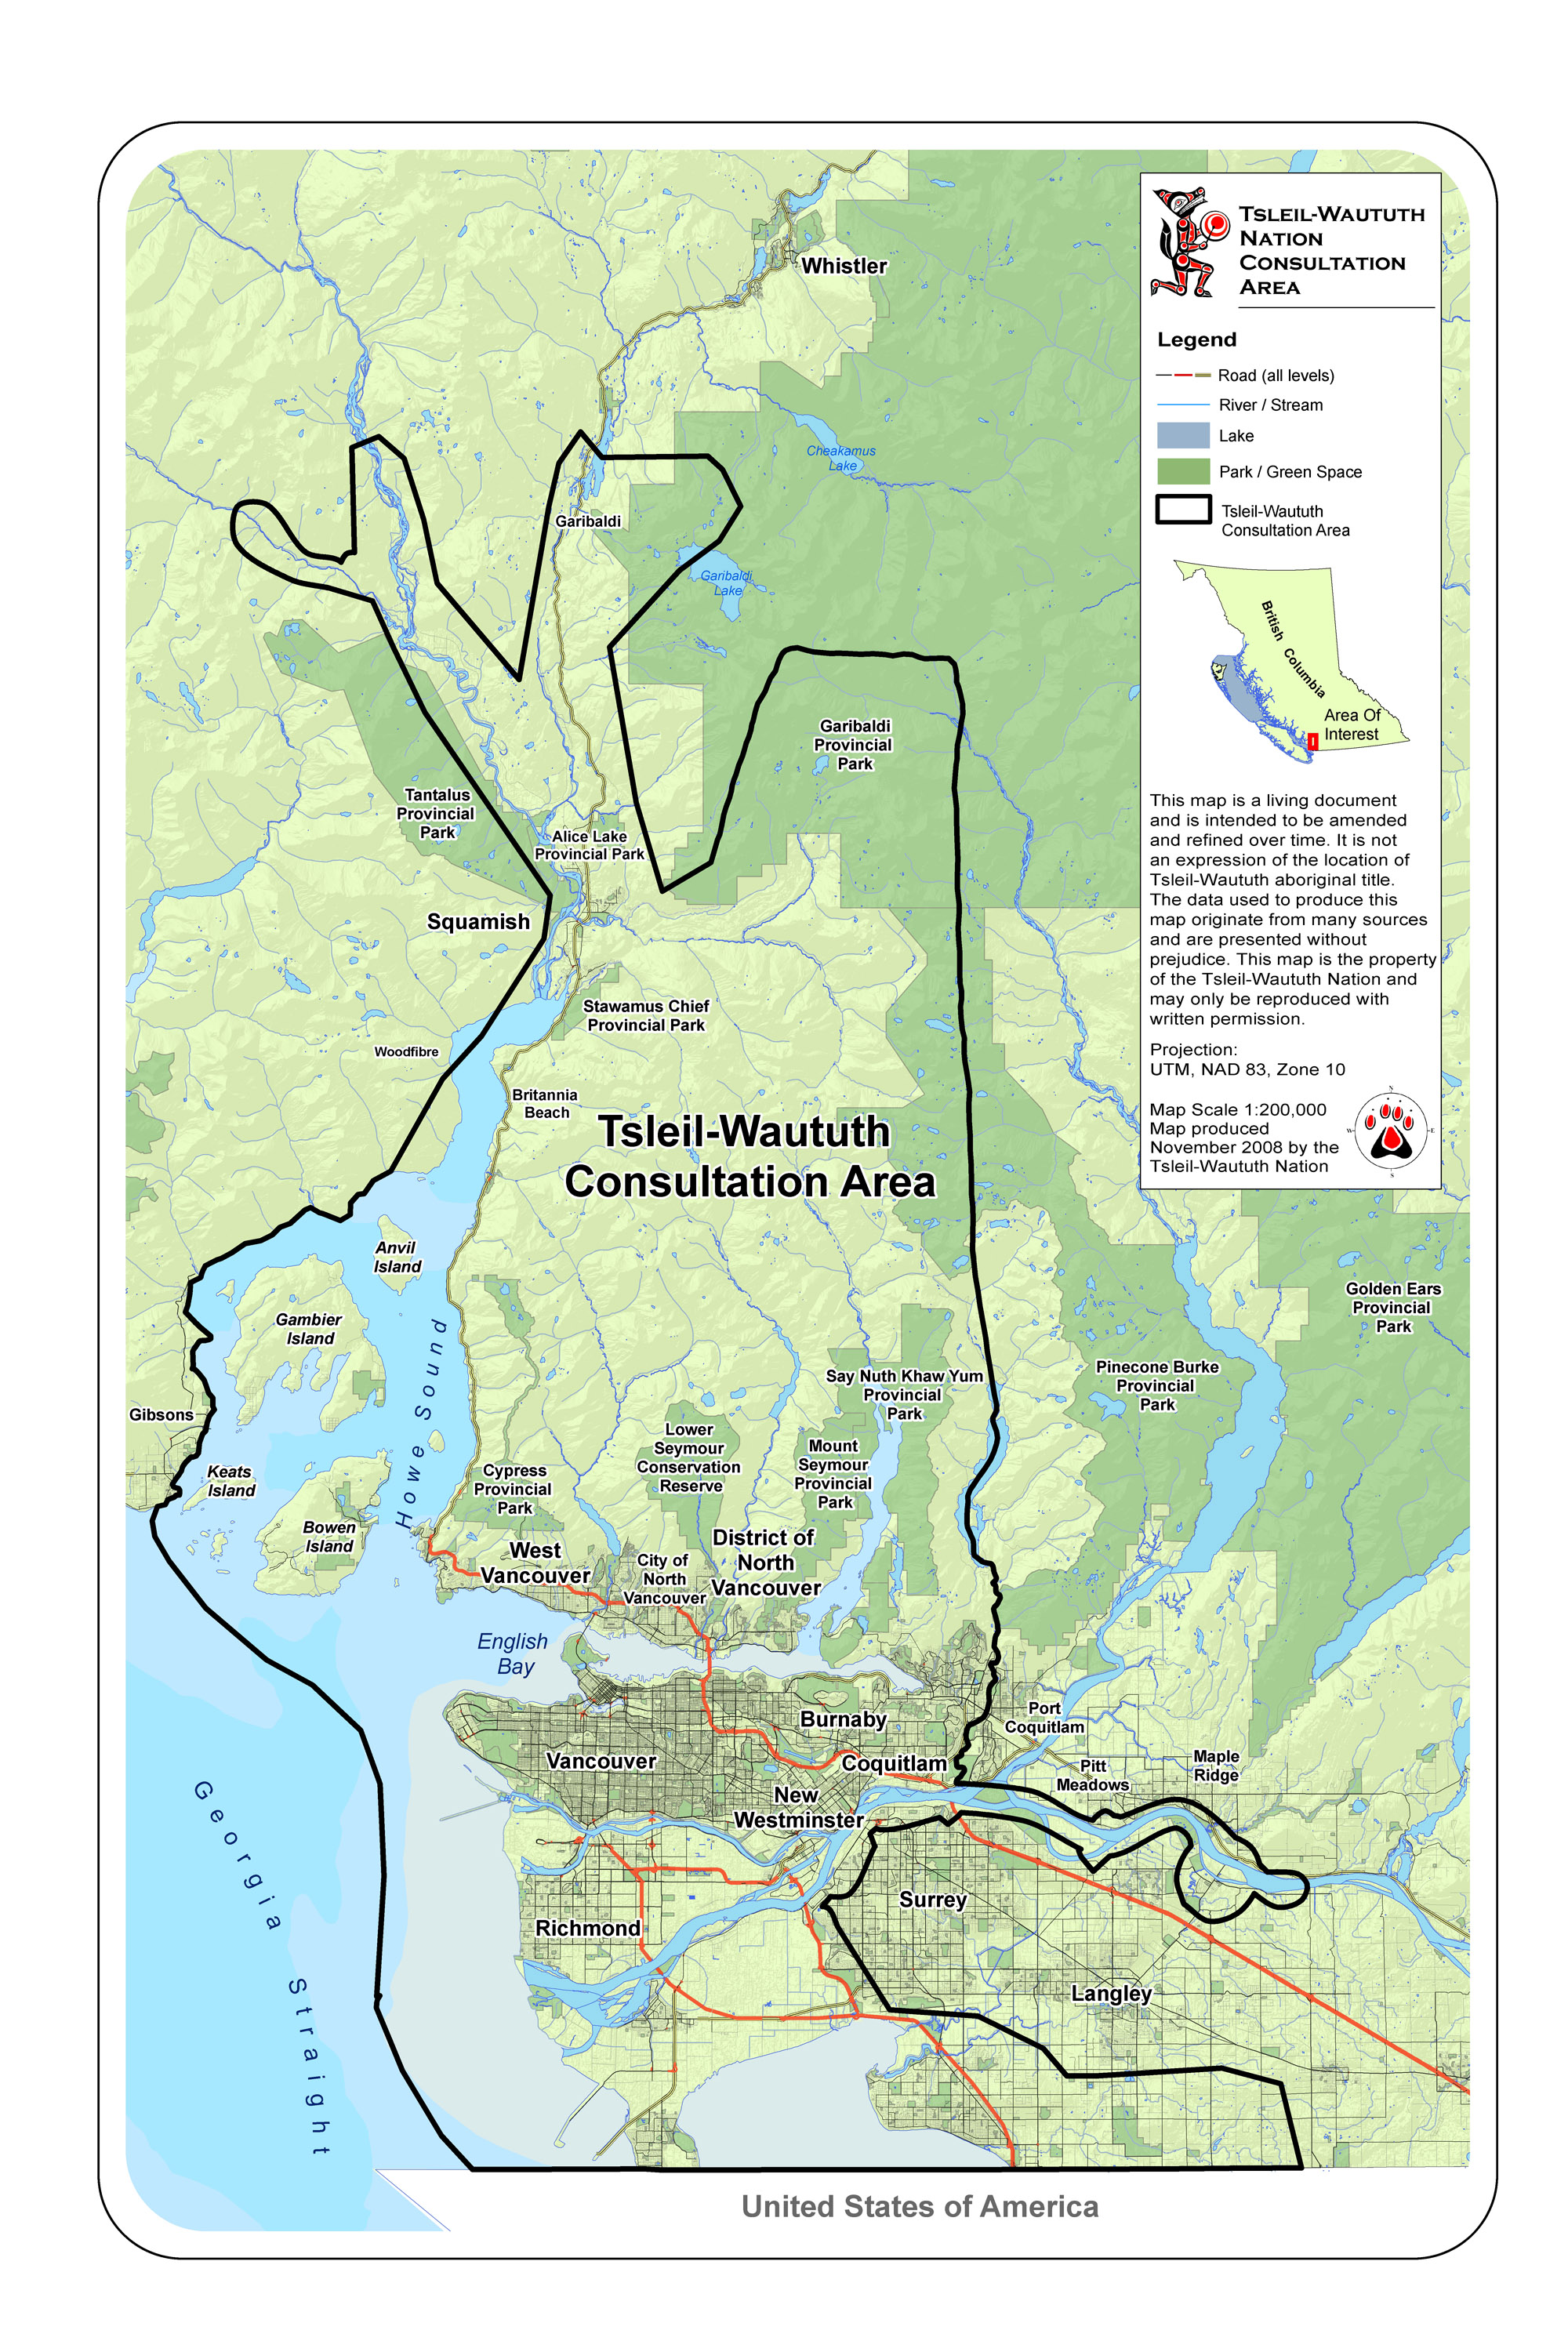 The traditional area of the Tsleil-Waututh Nation, which includes Vancouver and Burnaby, B.C. (credit: Tsleil-Waututh).